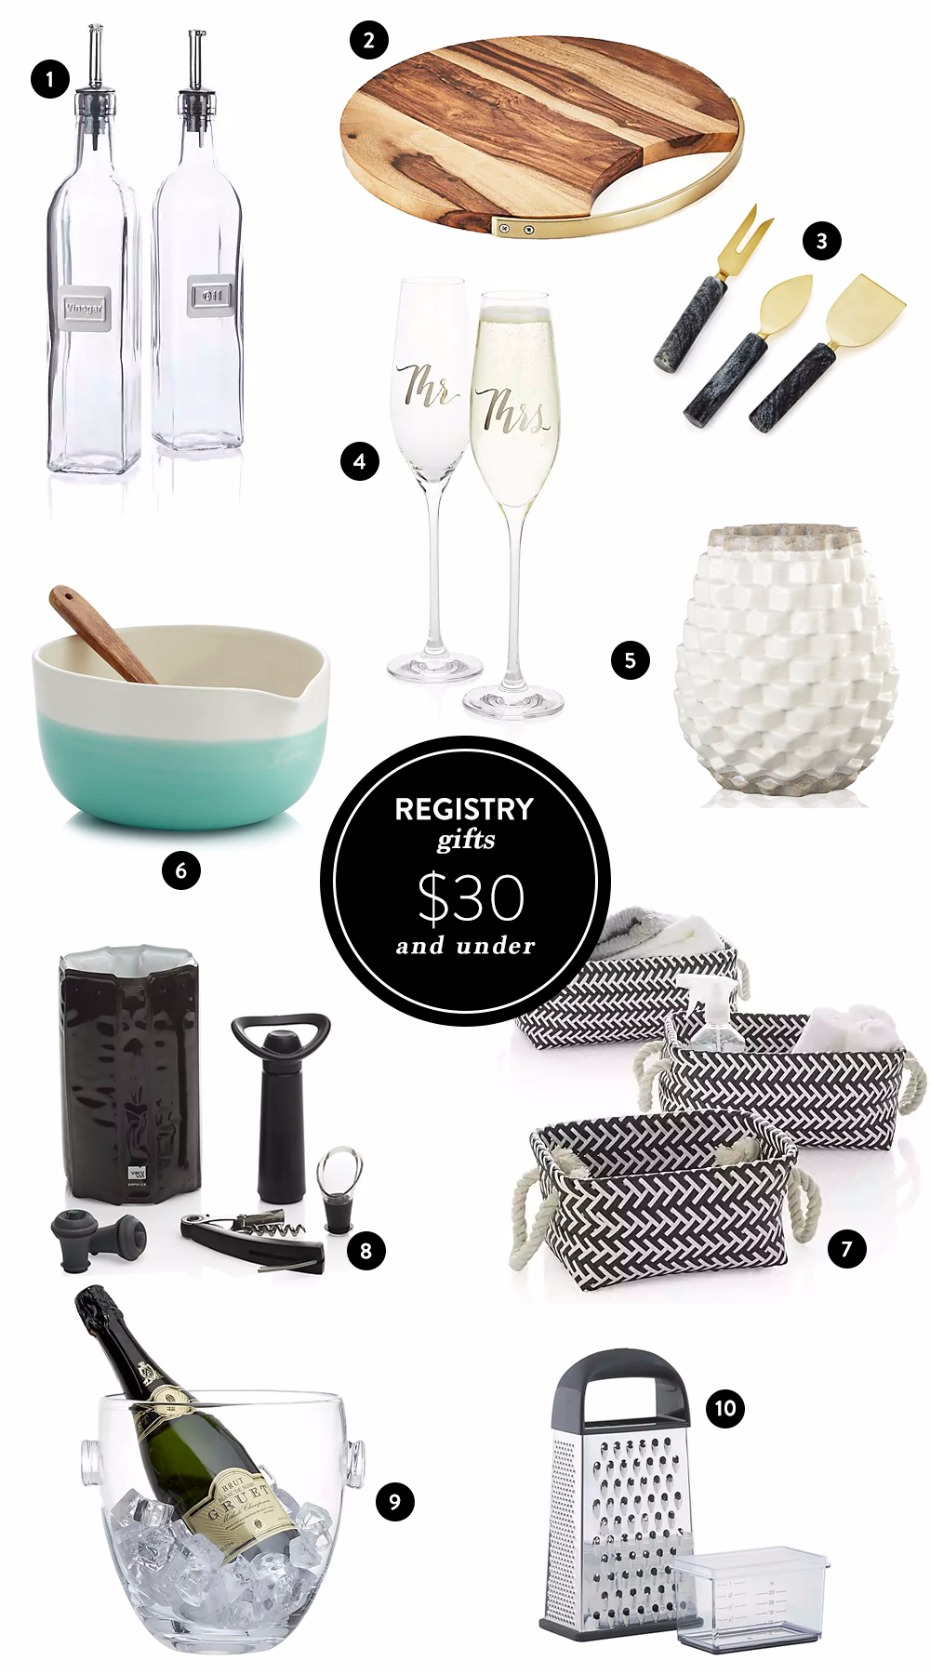 Affordable and special gifts to add to your wedding registry